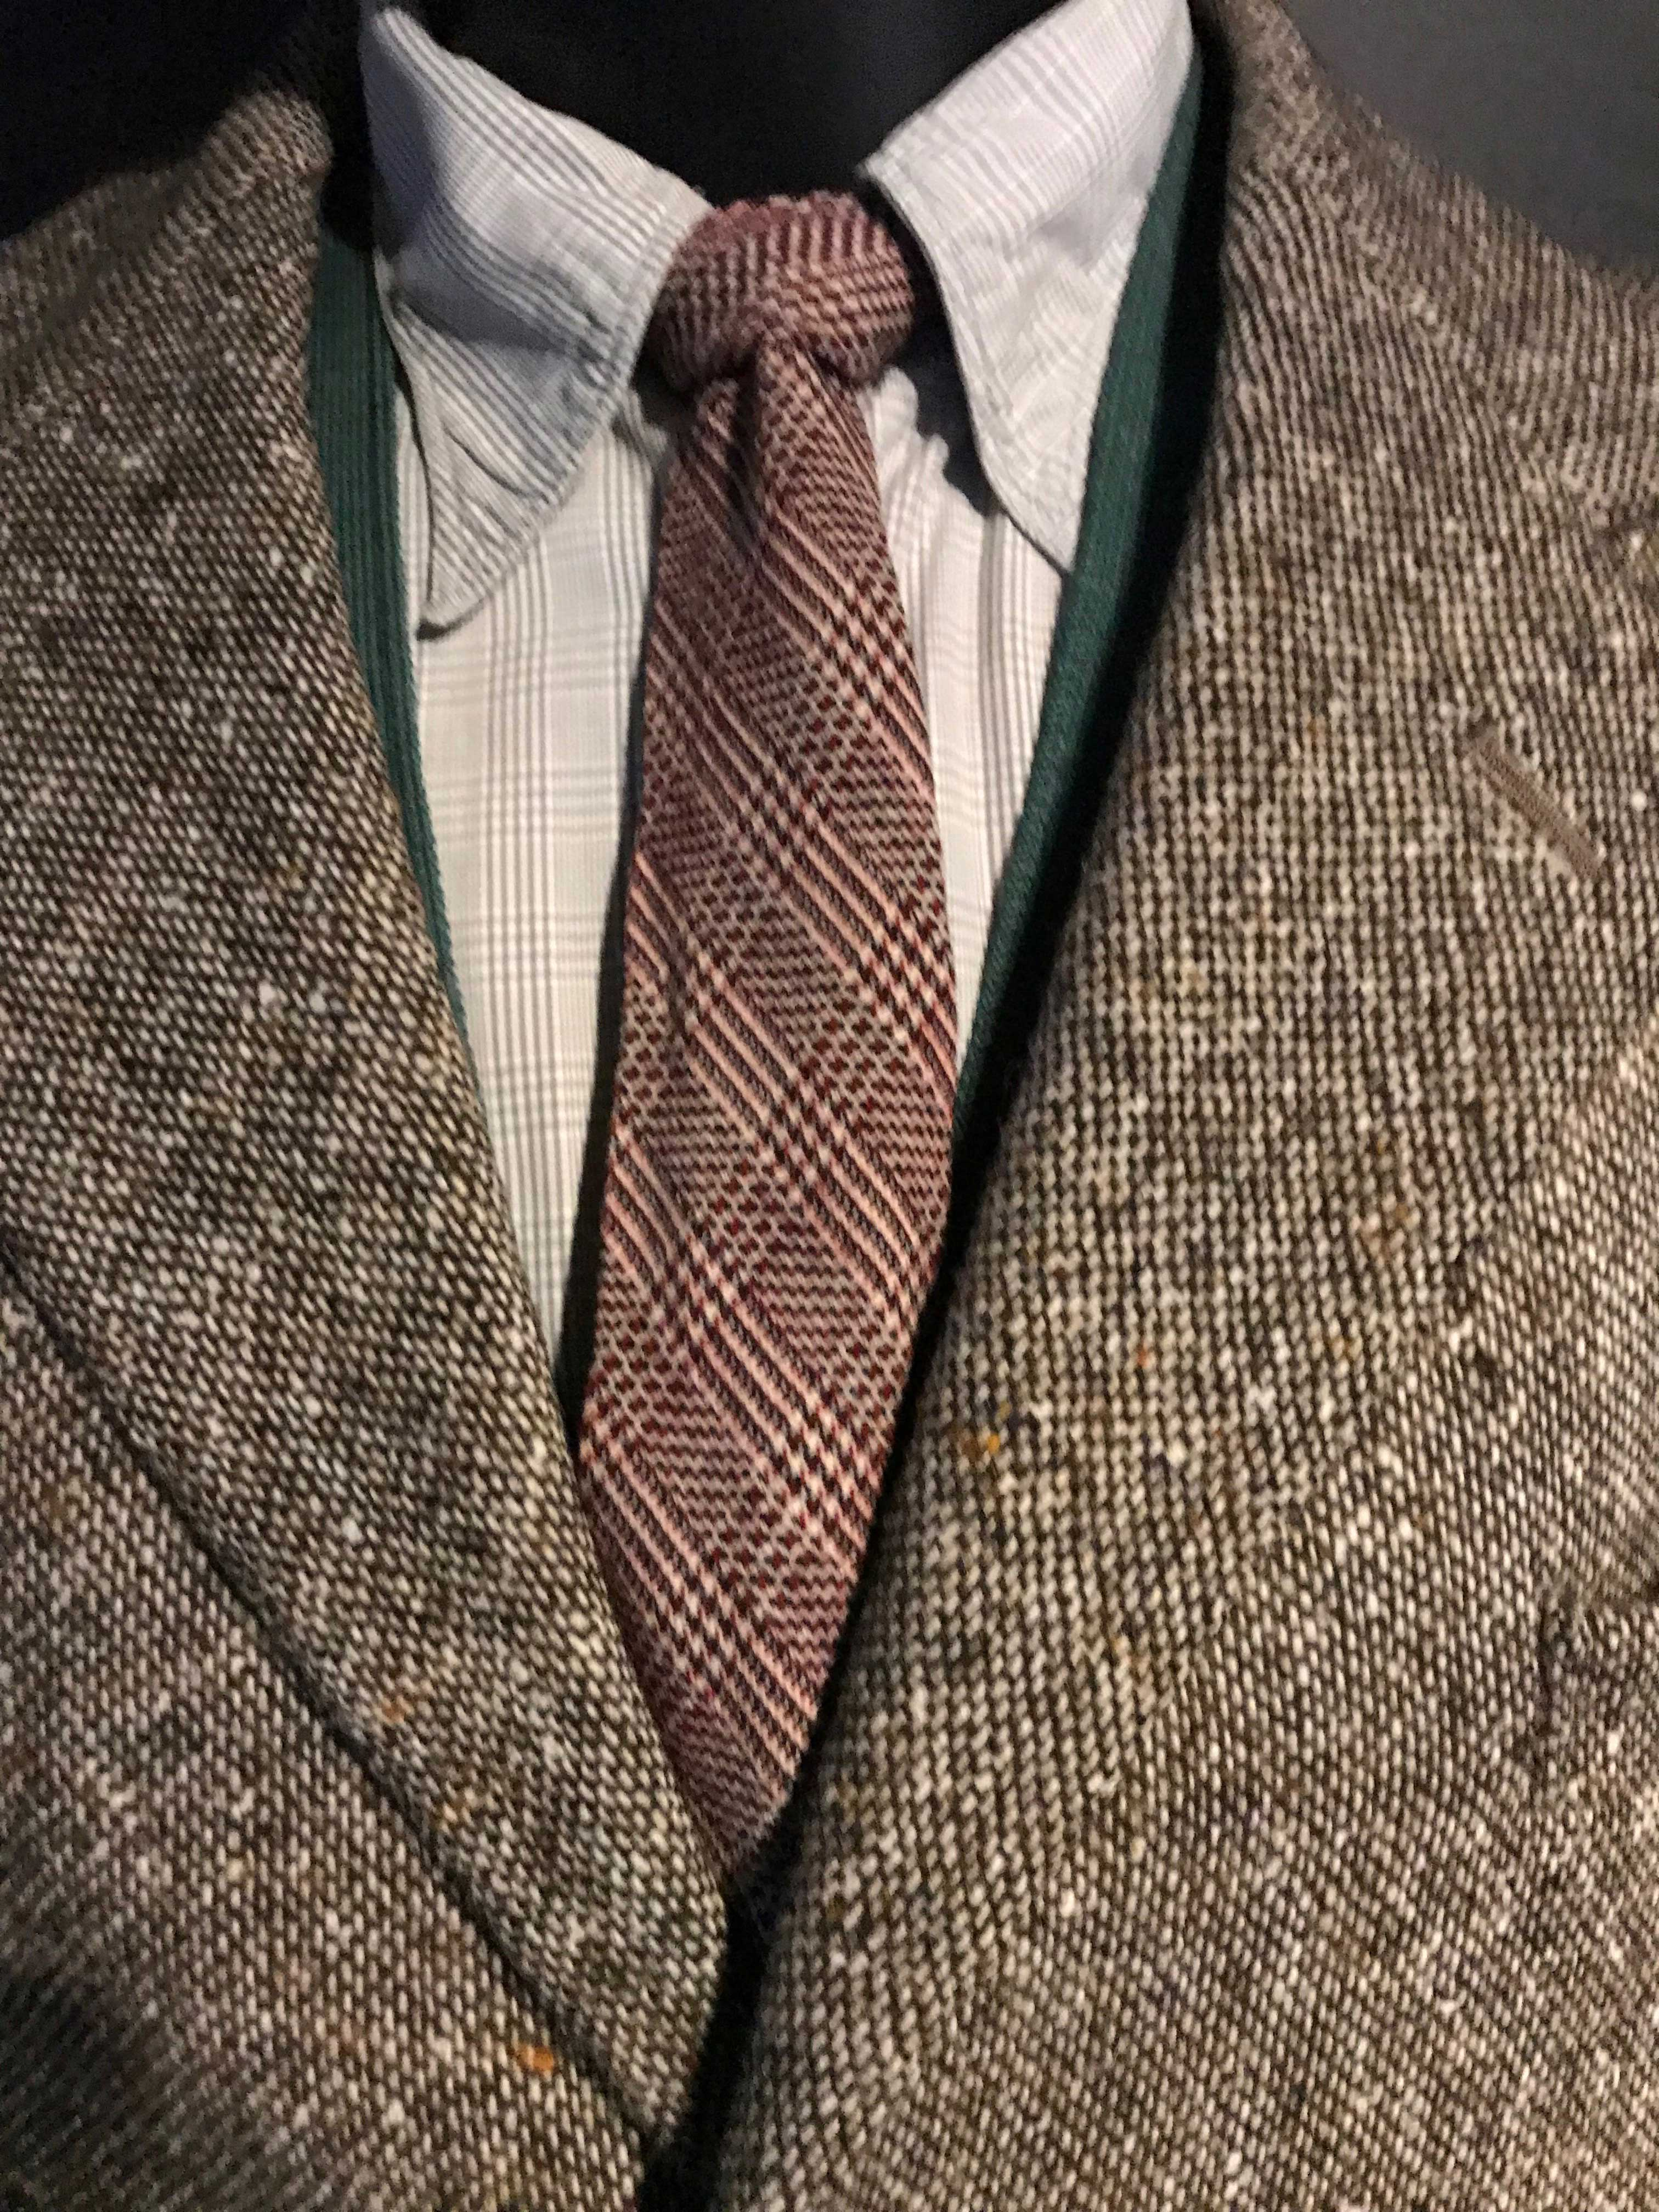 close up of tweed jacket and tie